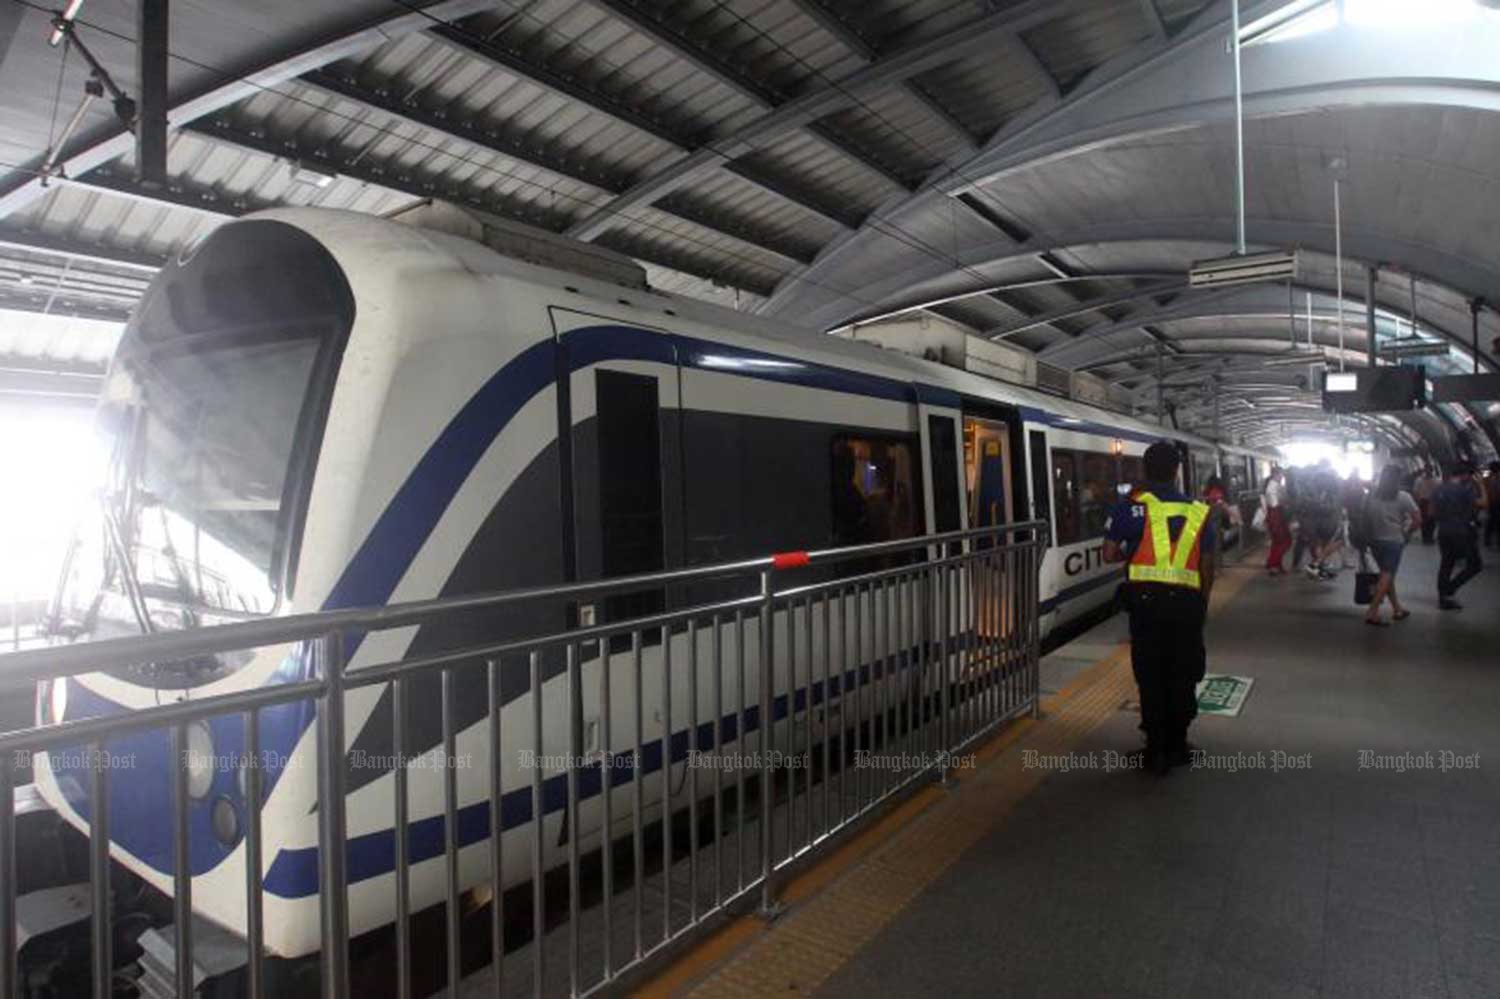 Airport Rail Link plans to reduce fares during non-rush hours by 55%, by introducing a  20-baht flat rate along the route between Suvarnabhumi airport and inner Bangkok. (File photo)